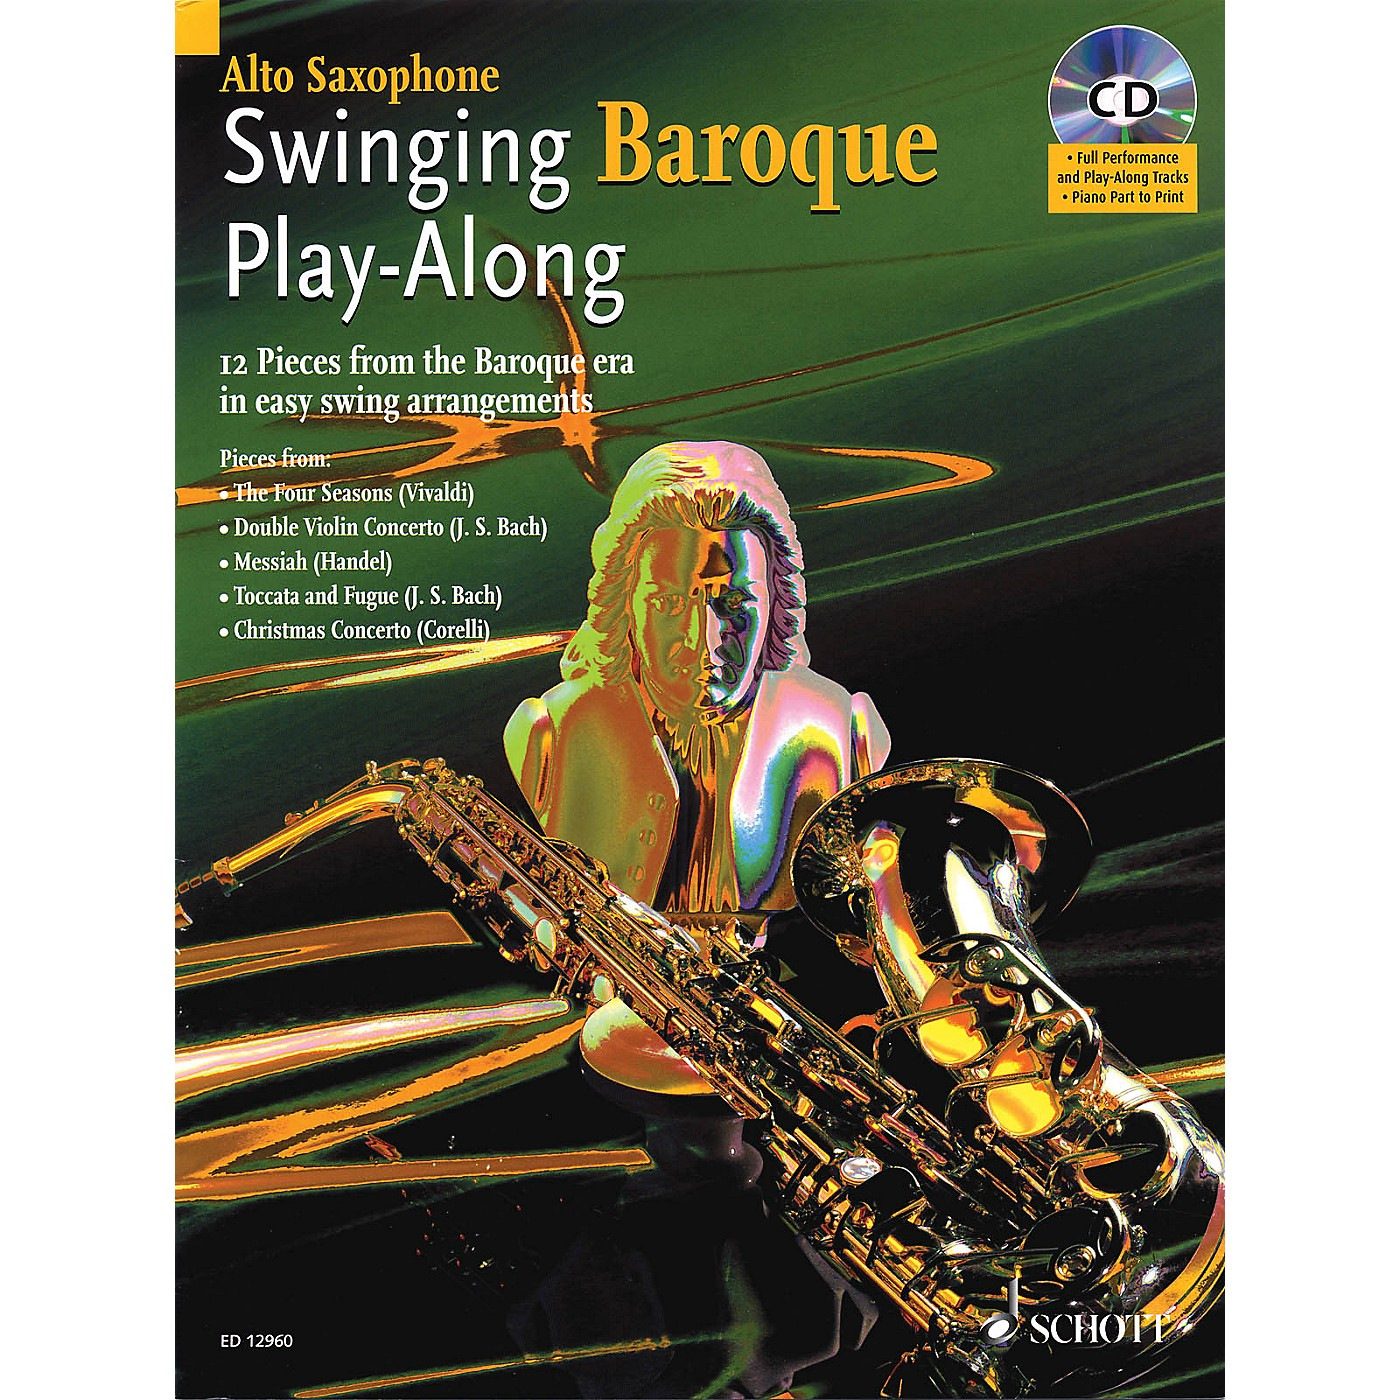 Schott Swinging Baroque Play-Along Misc Series Book with CD thumbnail